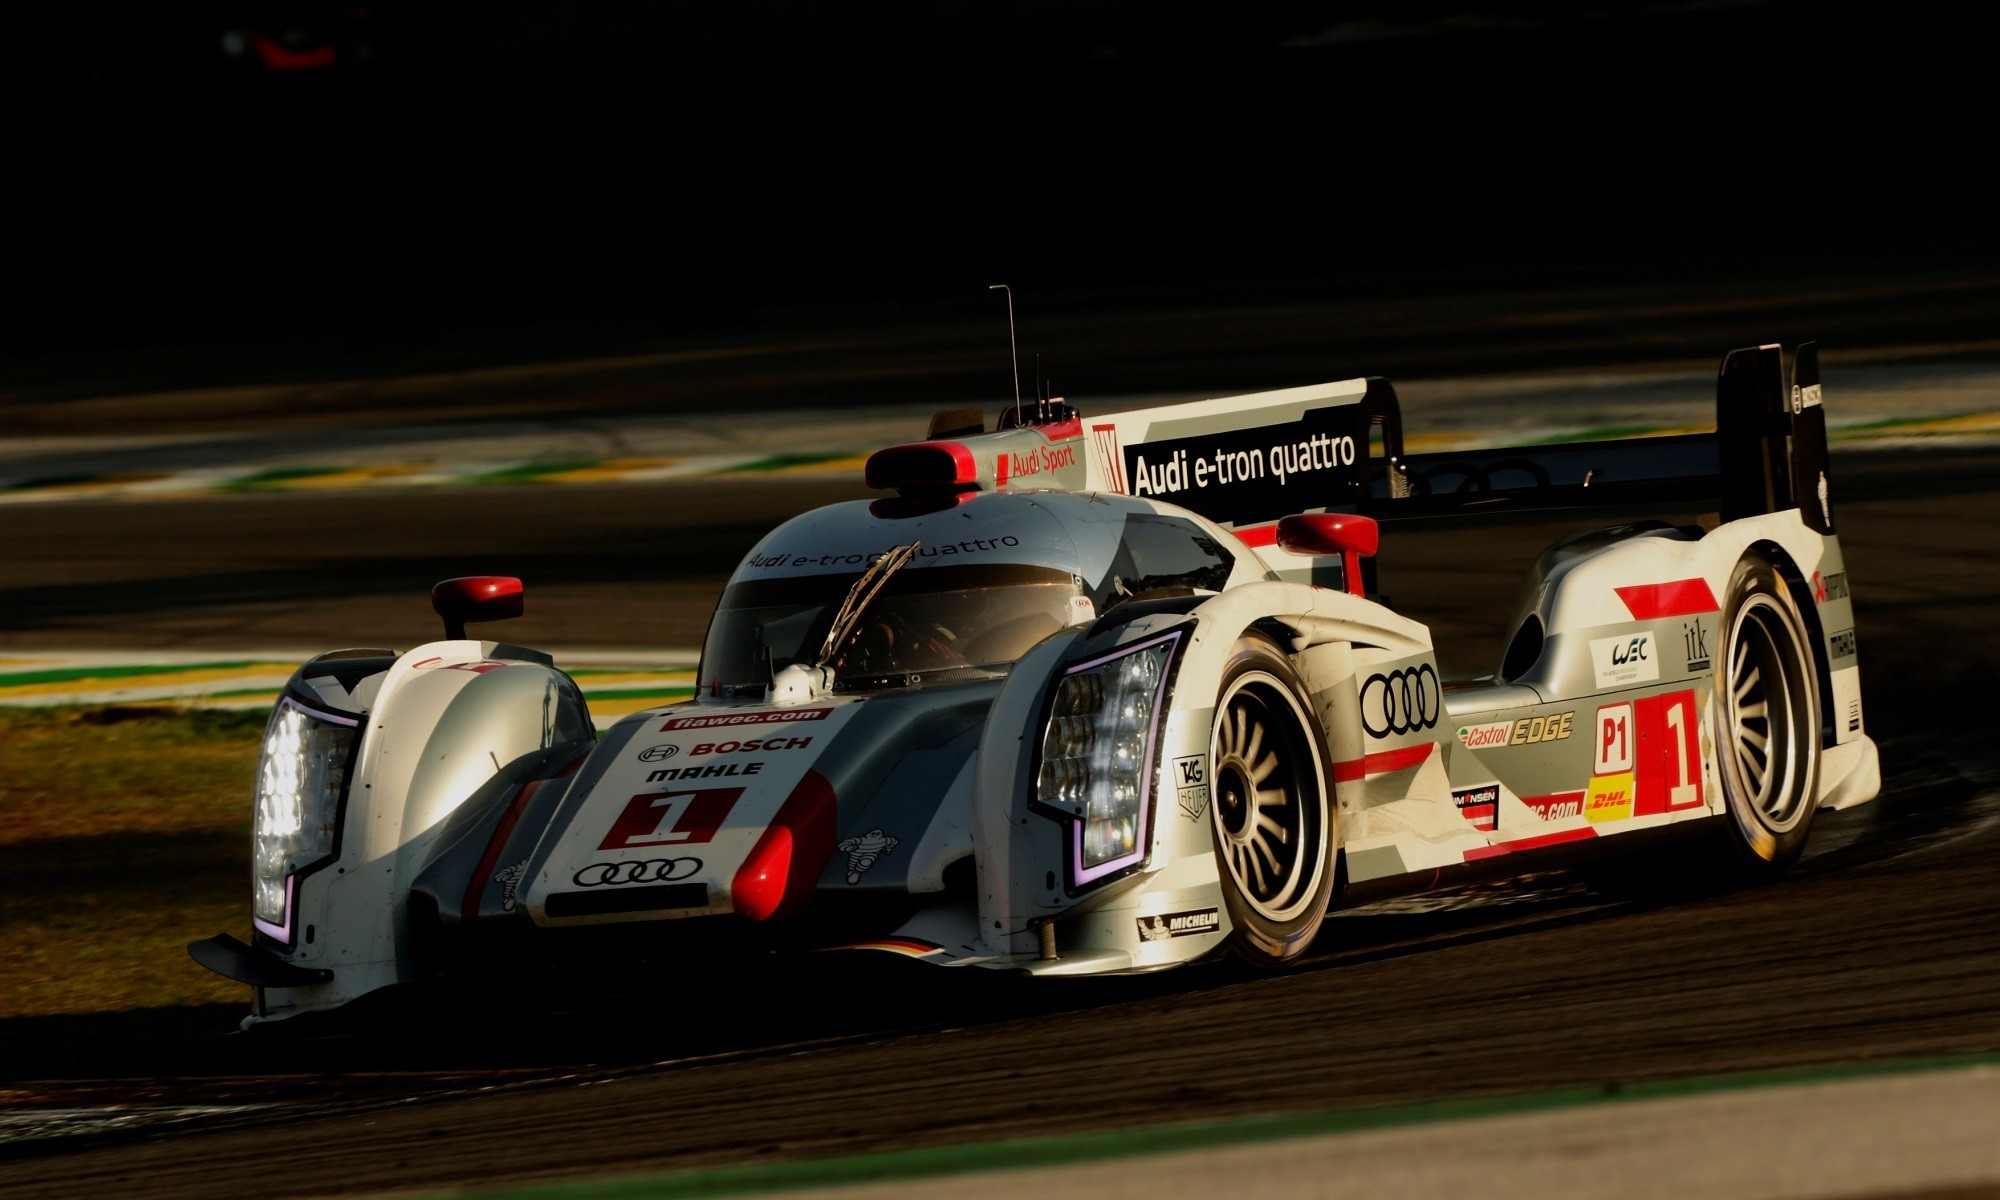 Audi R18 at sunrise